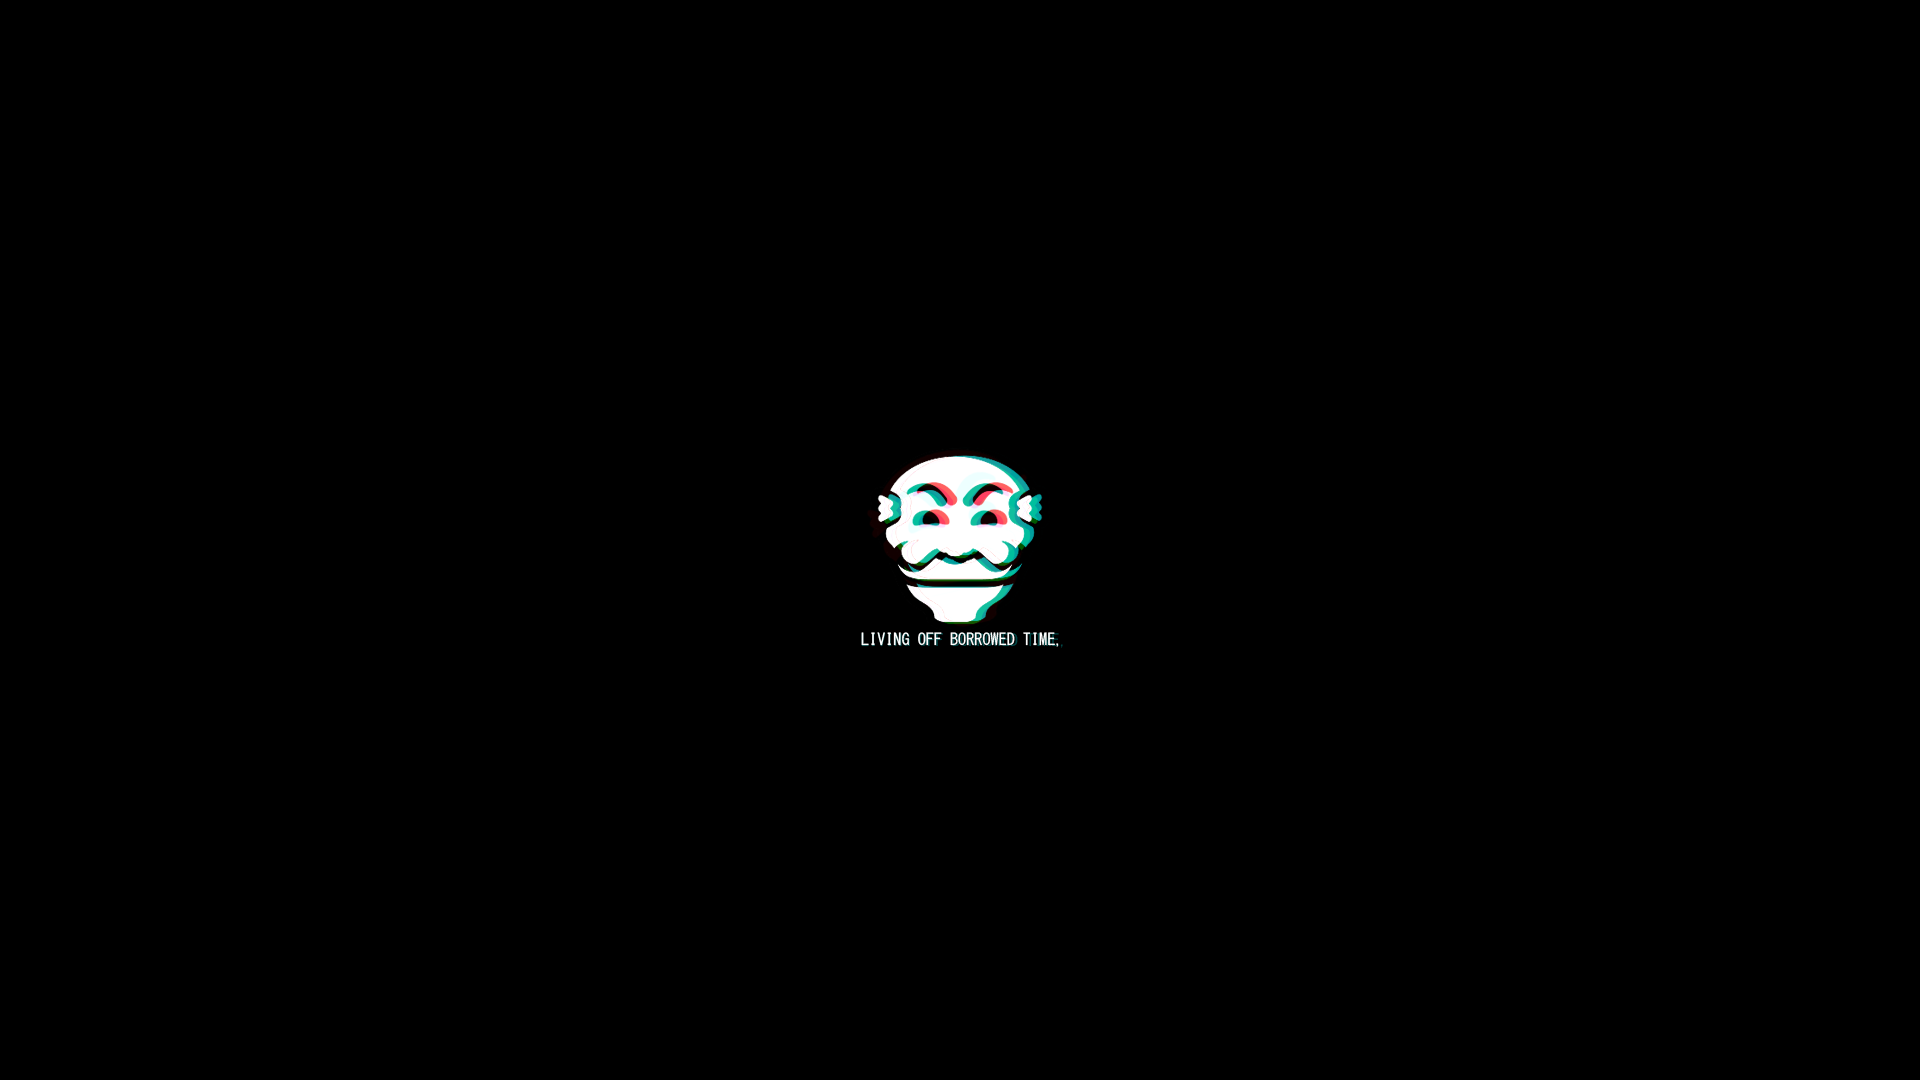 Made a simple Fsociety wallpaper (1920x1080) | Reddit HD Wallpapers | Wallpaper, Hd wallpaper ...